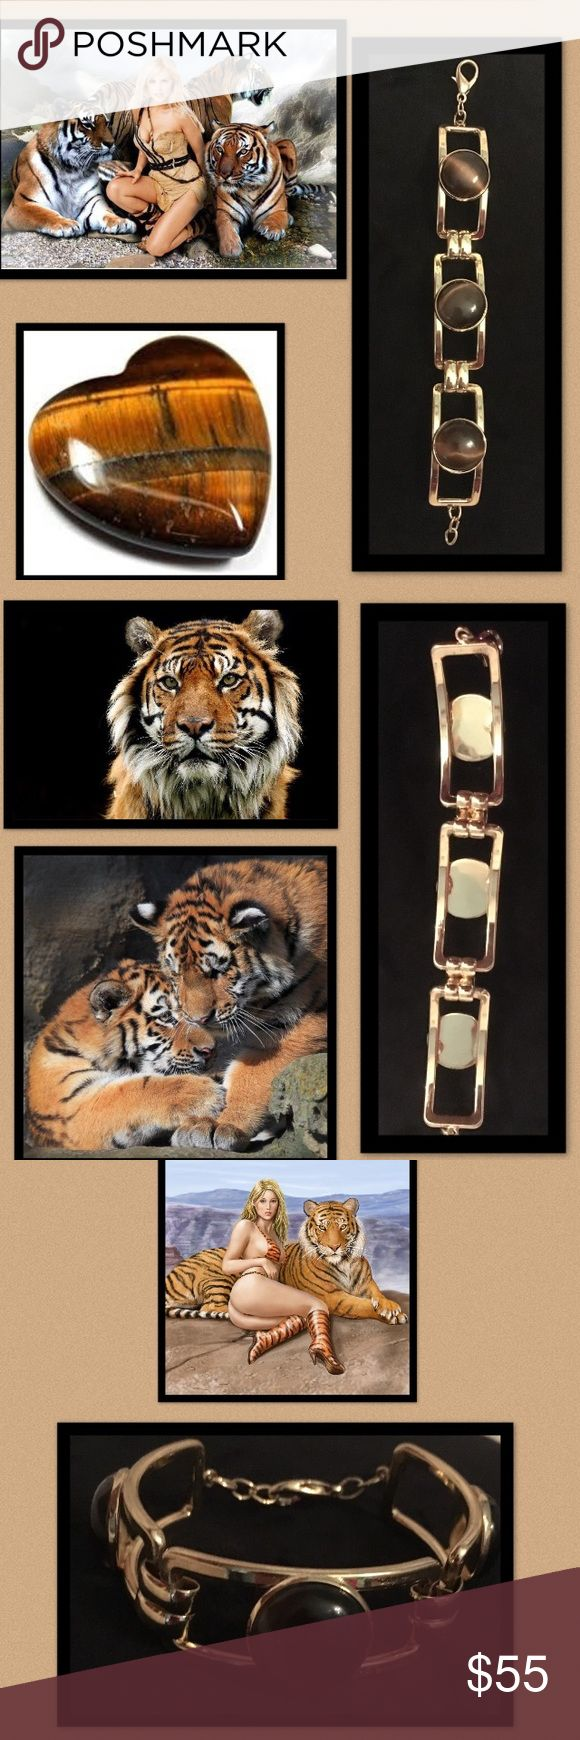 "🦋Tiger Eye Cabochon Bracelet Add easy sophistication with this remarkable gold tone rectangular bracelet•with round authentic tiger eye cabochon• Tiger's eye is a chatoyant gemstone member of the quartz group that is usually a metamorphic rock with a golden to red-brown colour and a silky lustre•dates back to the ancient Egyptians•Tiger's eye was also used by Roman soldiers as it was thought to keep them brave during battle. •7 1/2"" total length  •lobster claw clasp Jewelry Bracelets"